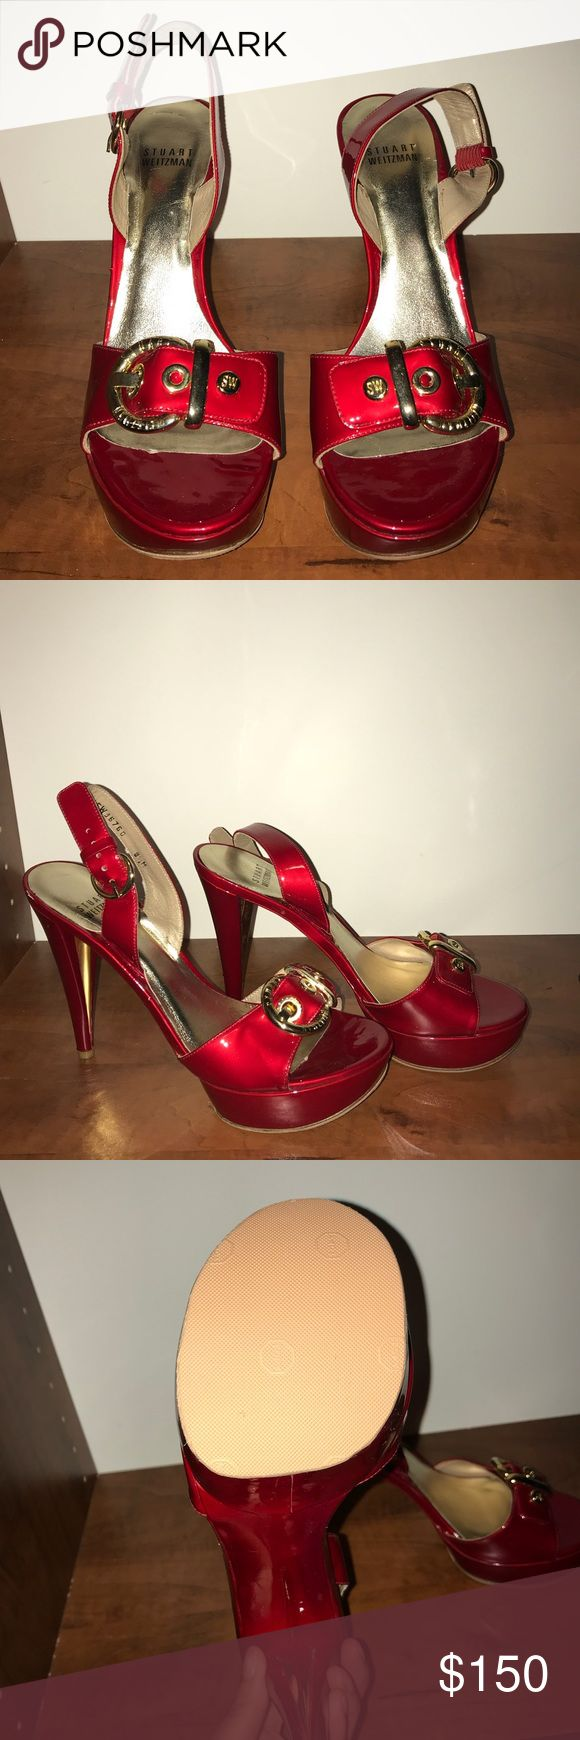 Red Patent. Sexy & fun shoe. Red. Strappy. Patent. Sandal. Rubber sole protector. Stuart Weitzman Shoes Sandals